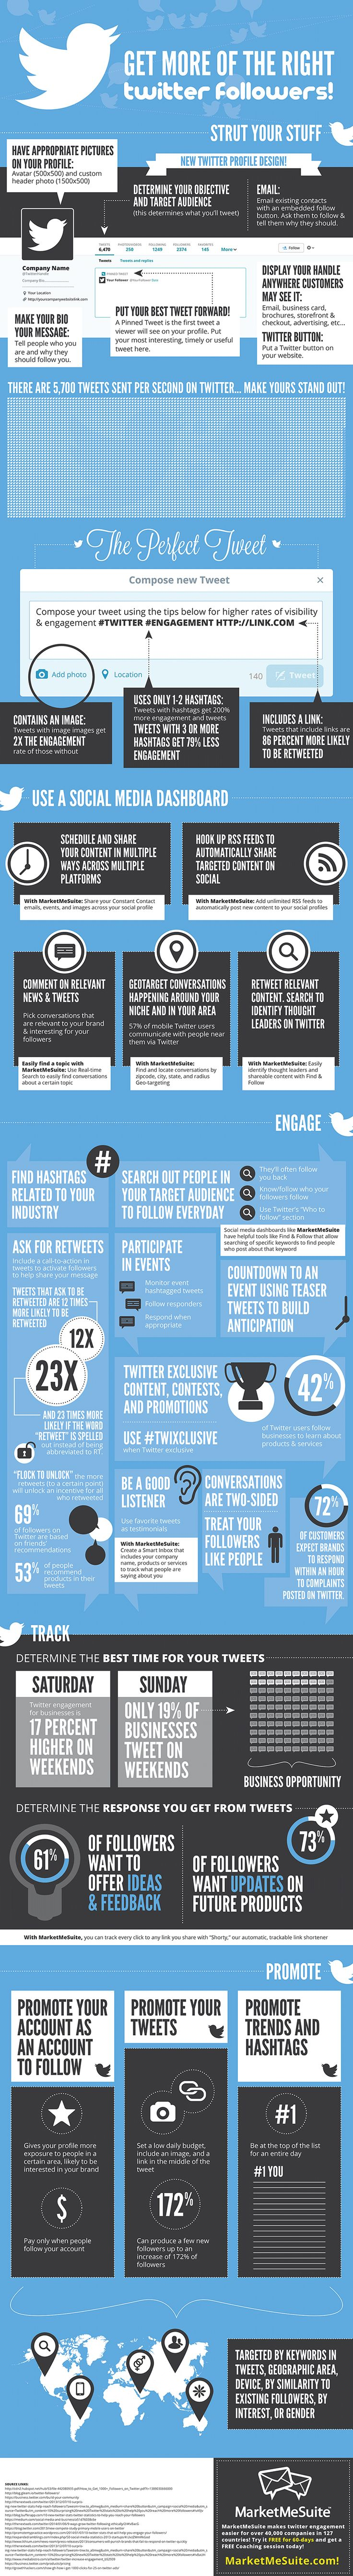 Learn How To Get More of the Right Twitter Followers #Twitter #Infographics